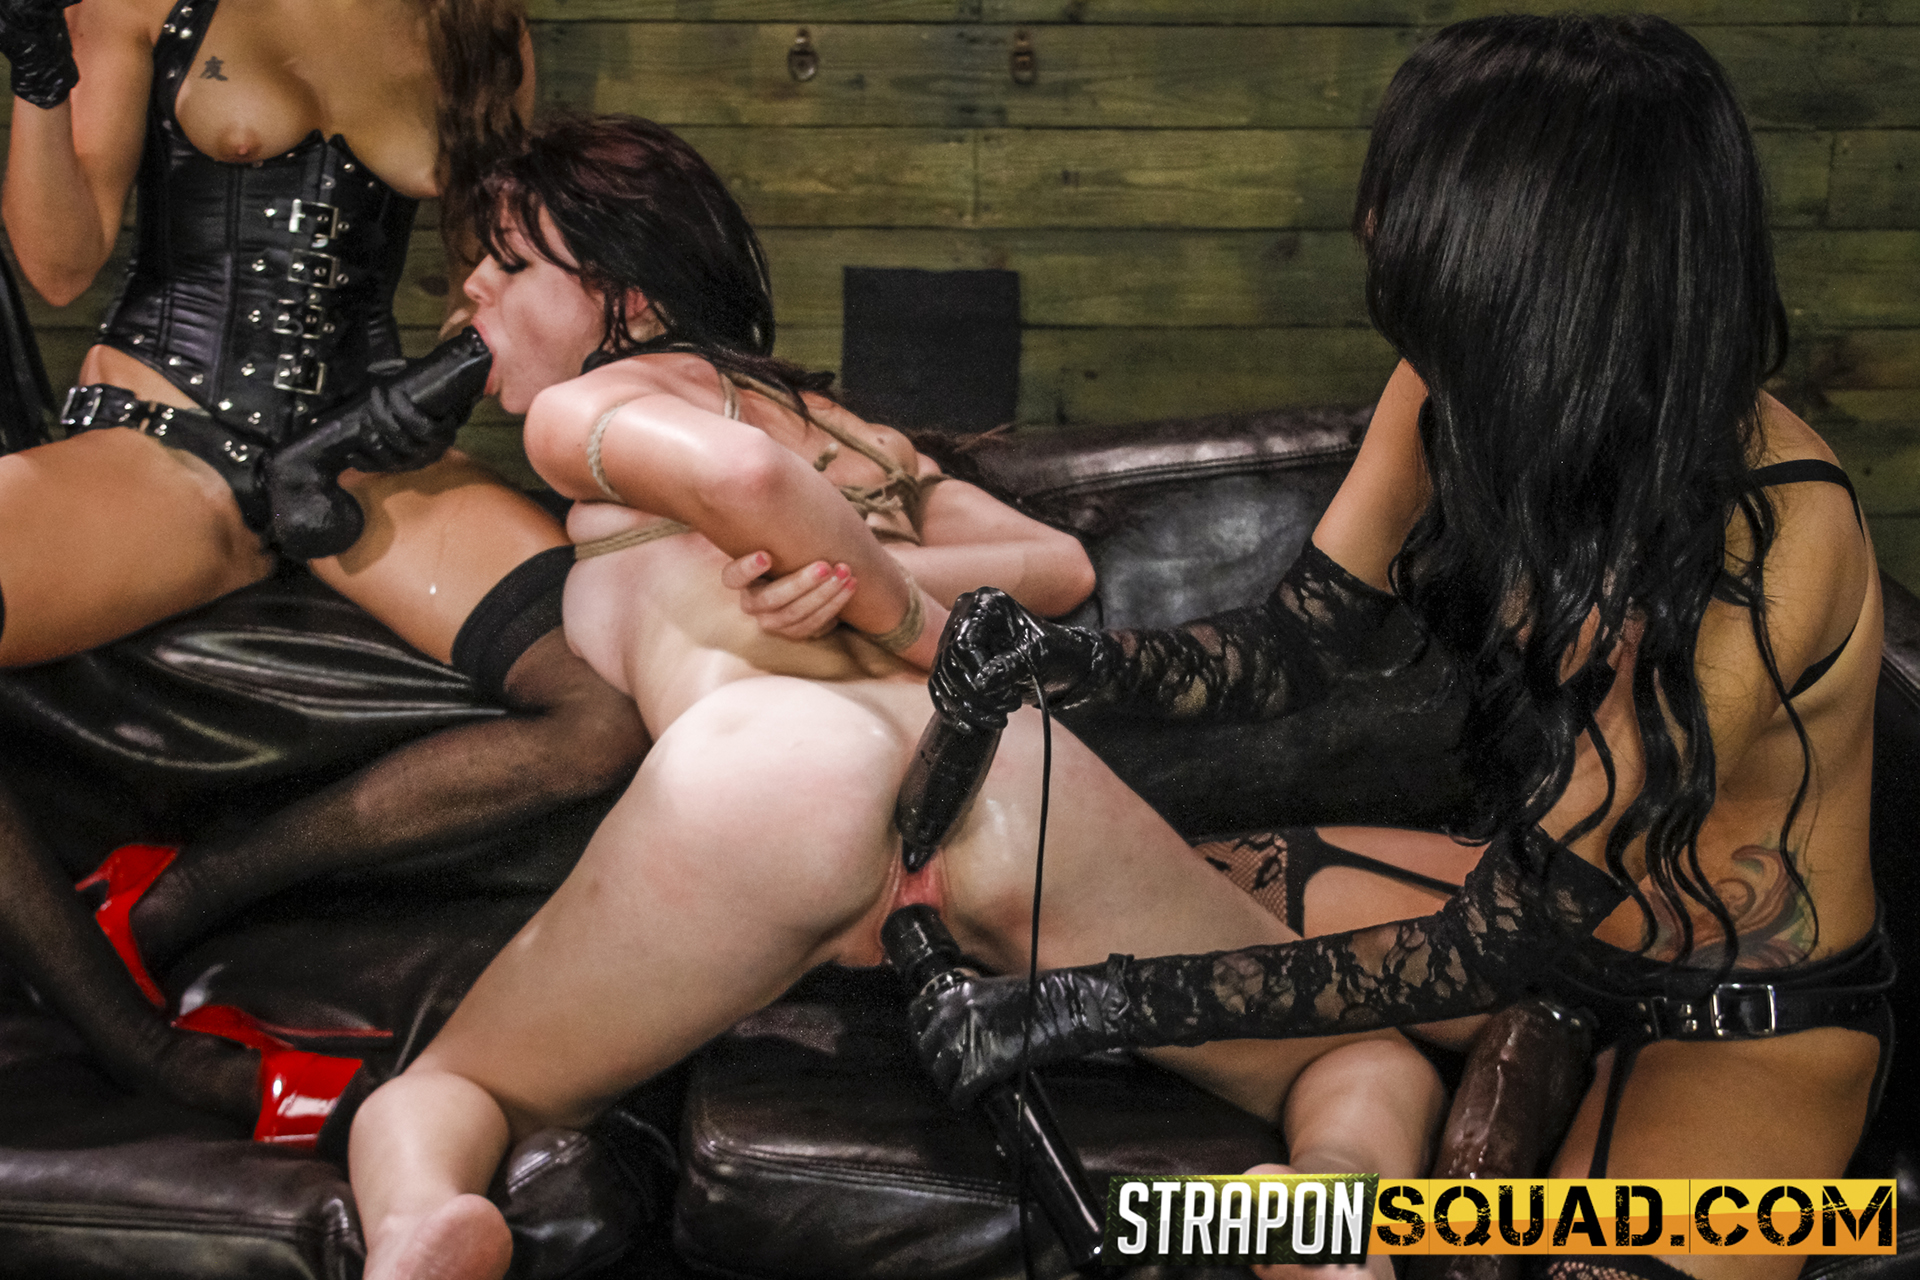 Lezzie Dominance & Sybian Saddle 3 Way With Kaisey Dean, Marina Angel, Esmi Lee